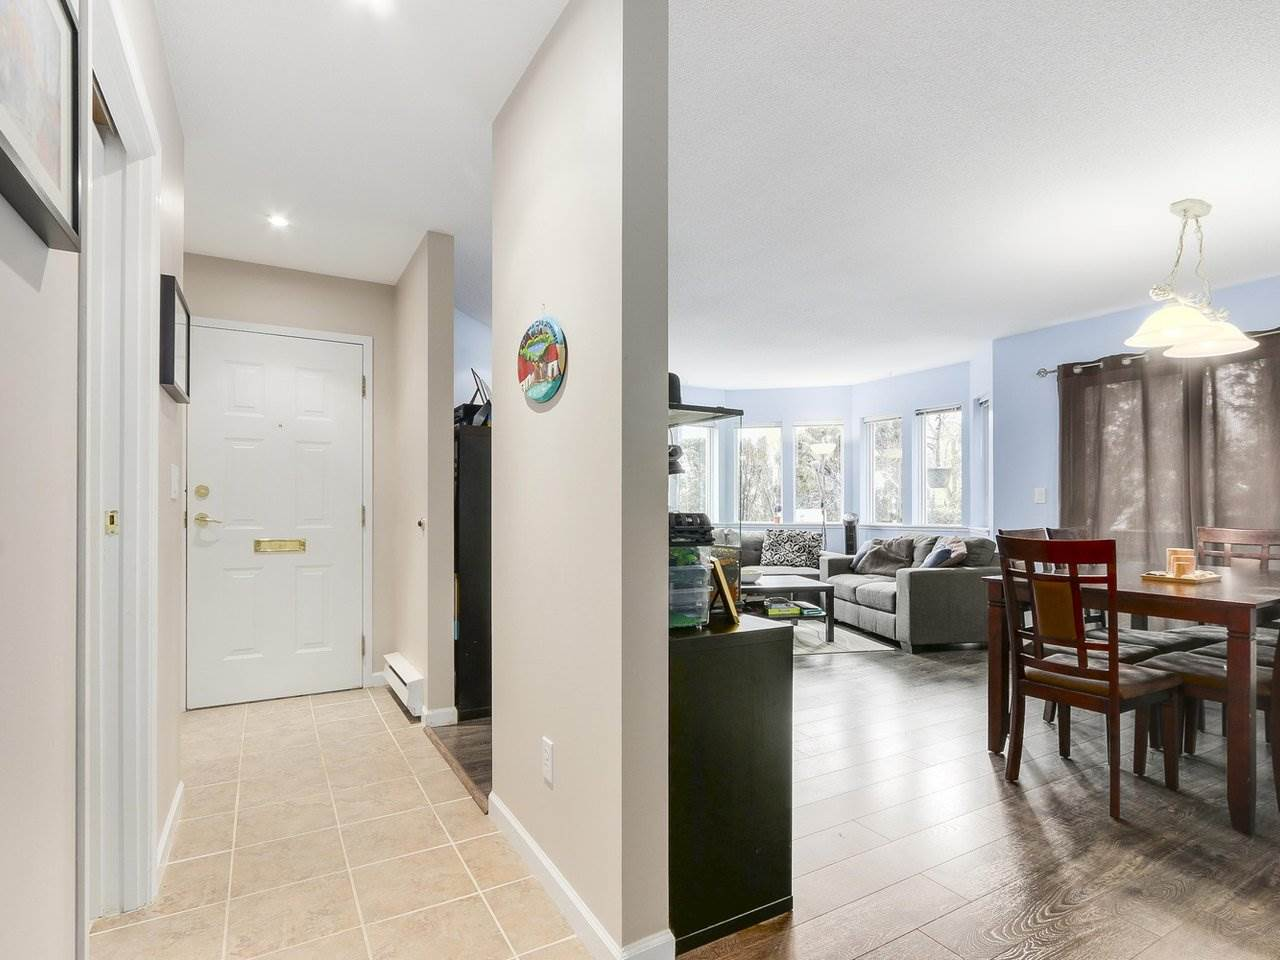 Photo 2: 127 1201 BRUNETTE Avenue in Coquitlam: Maillardville Townhouse for sale : MLS(r) # R2162178